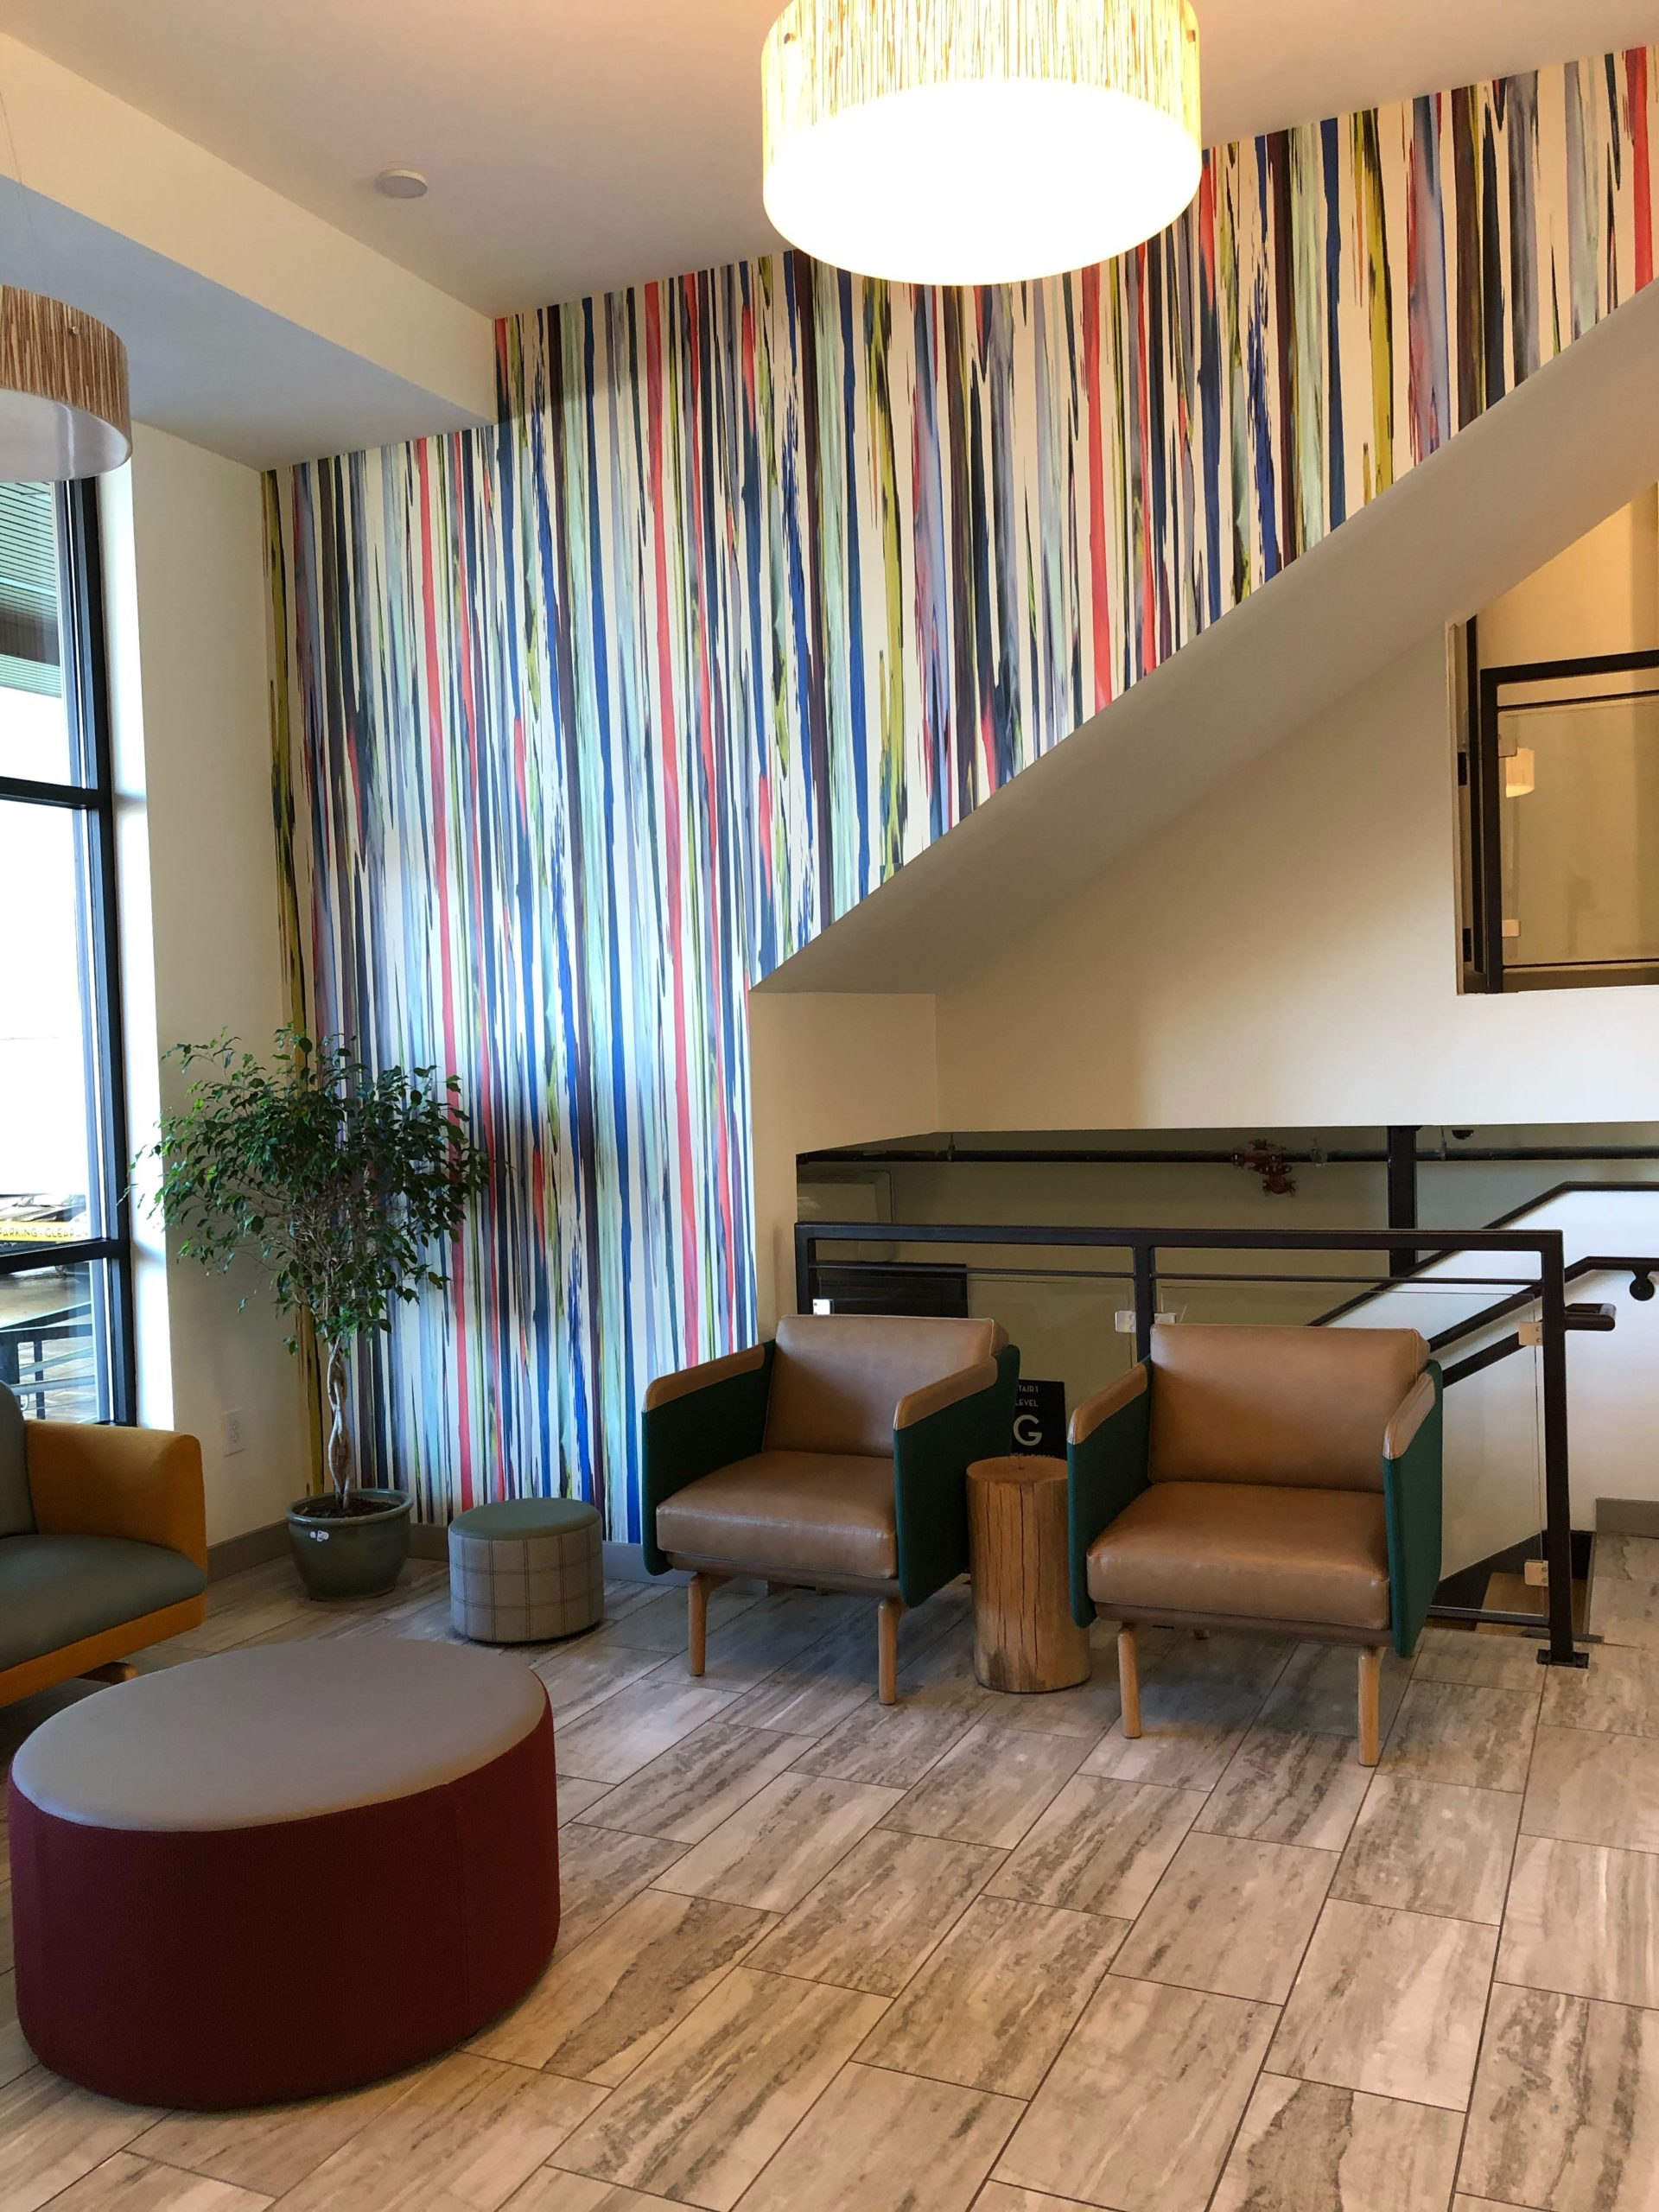 The lobby offers a comfortable place to sit for residents